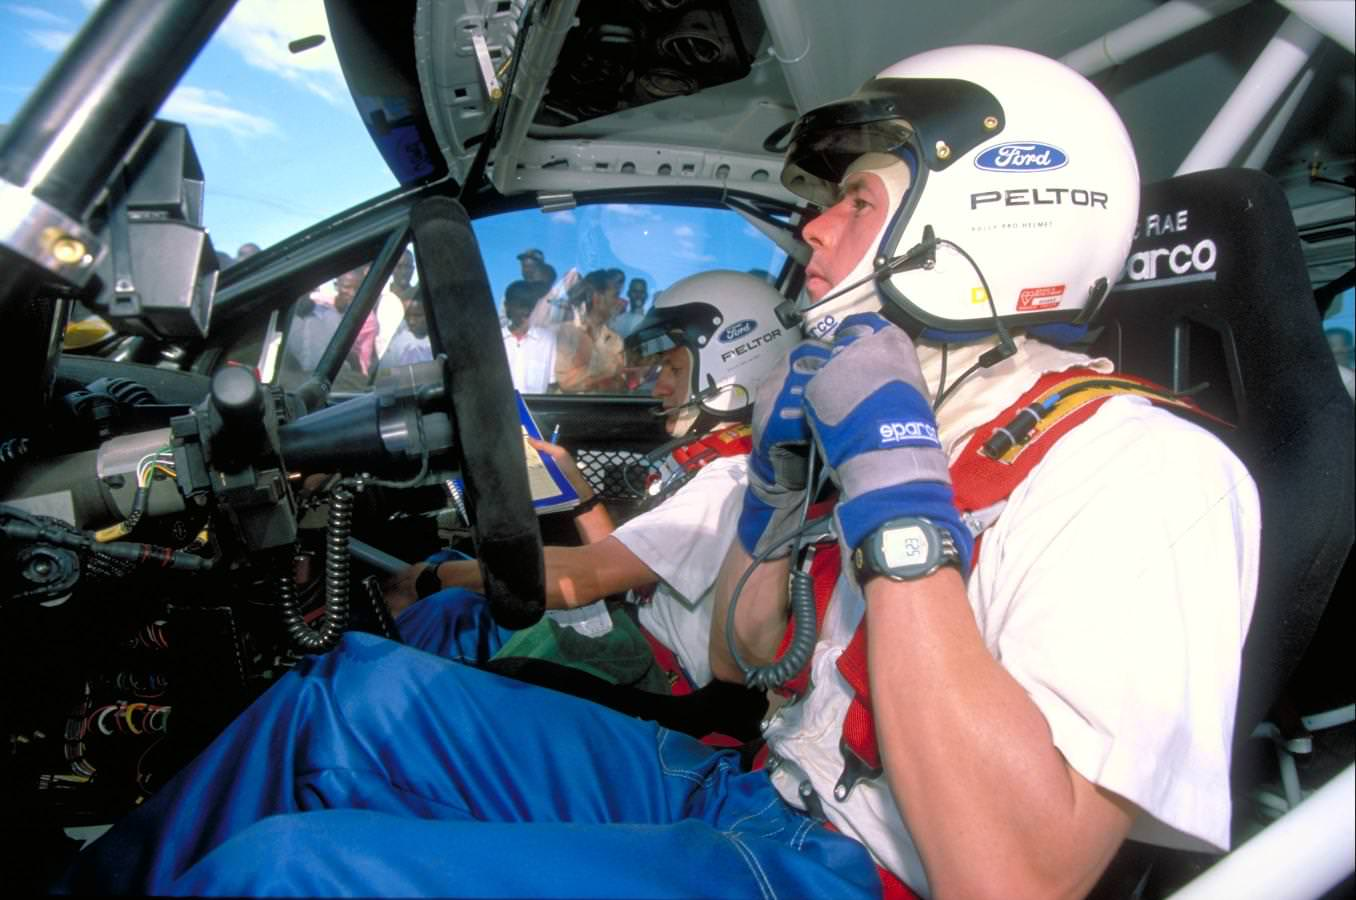 Colin McRae inside his Subaru Impreza